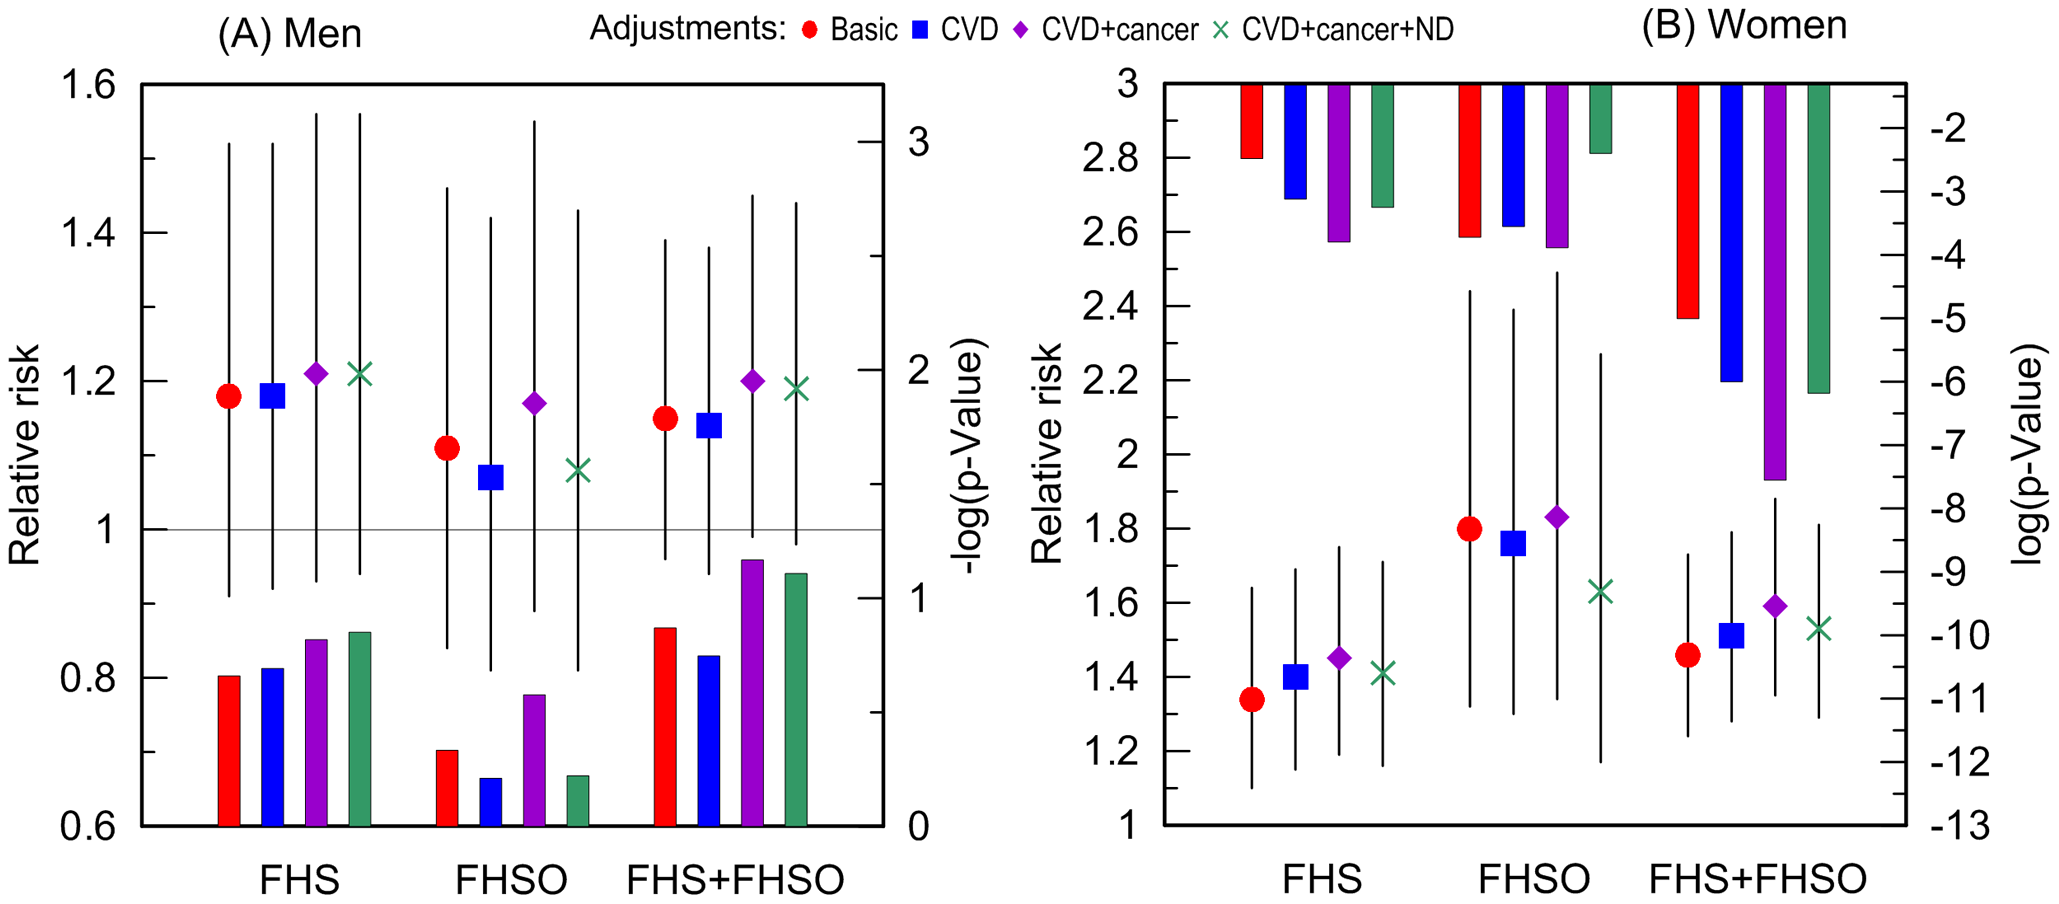 Relative risks of death and p-values for the ApoE4 allele carriers compared to the non-carriers.